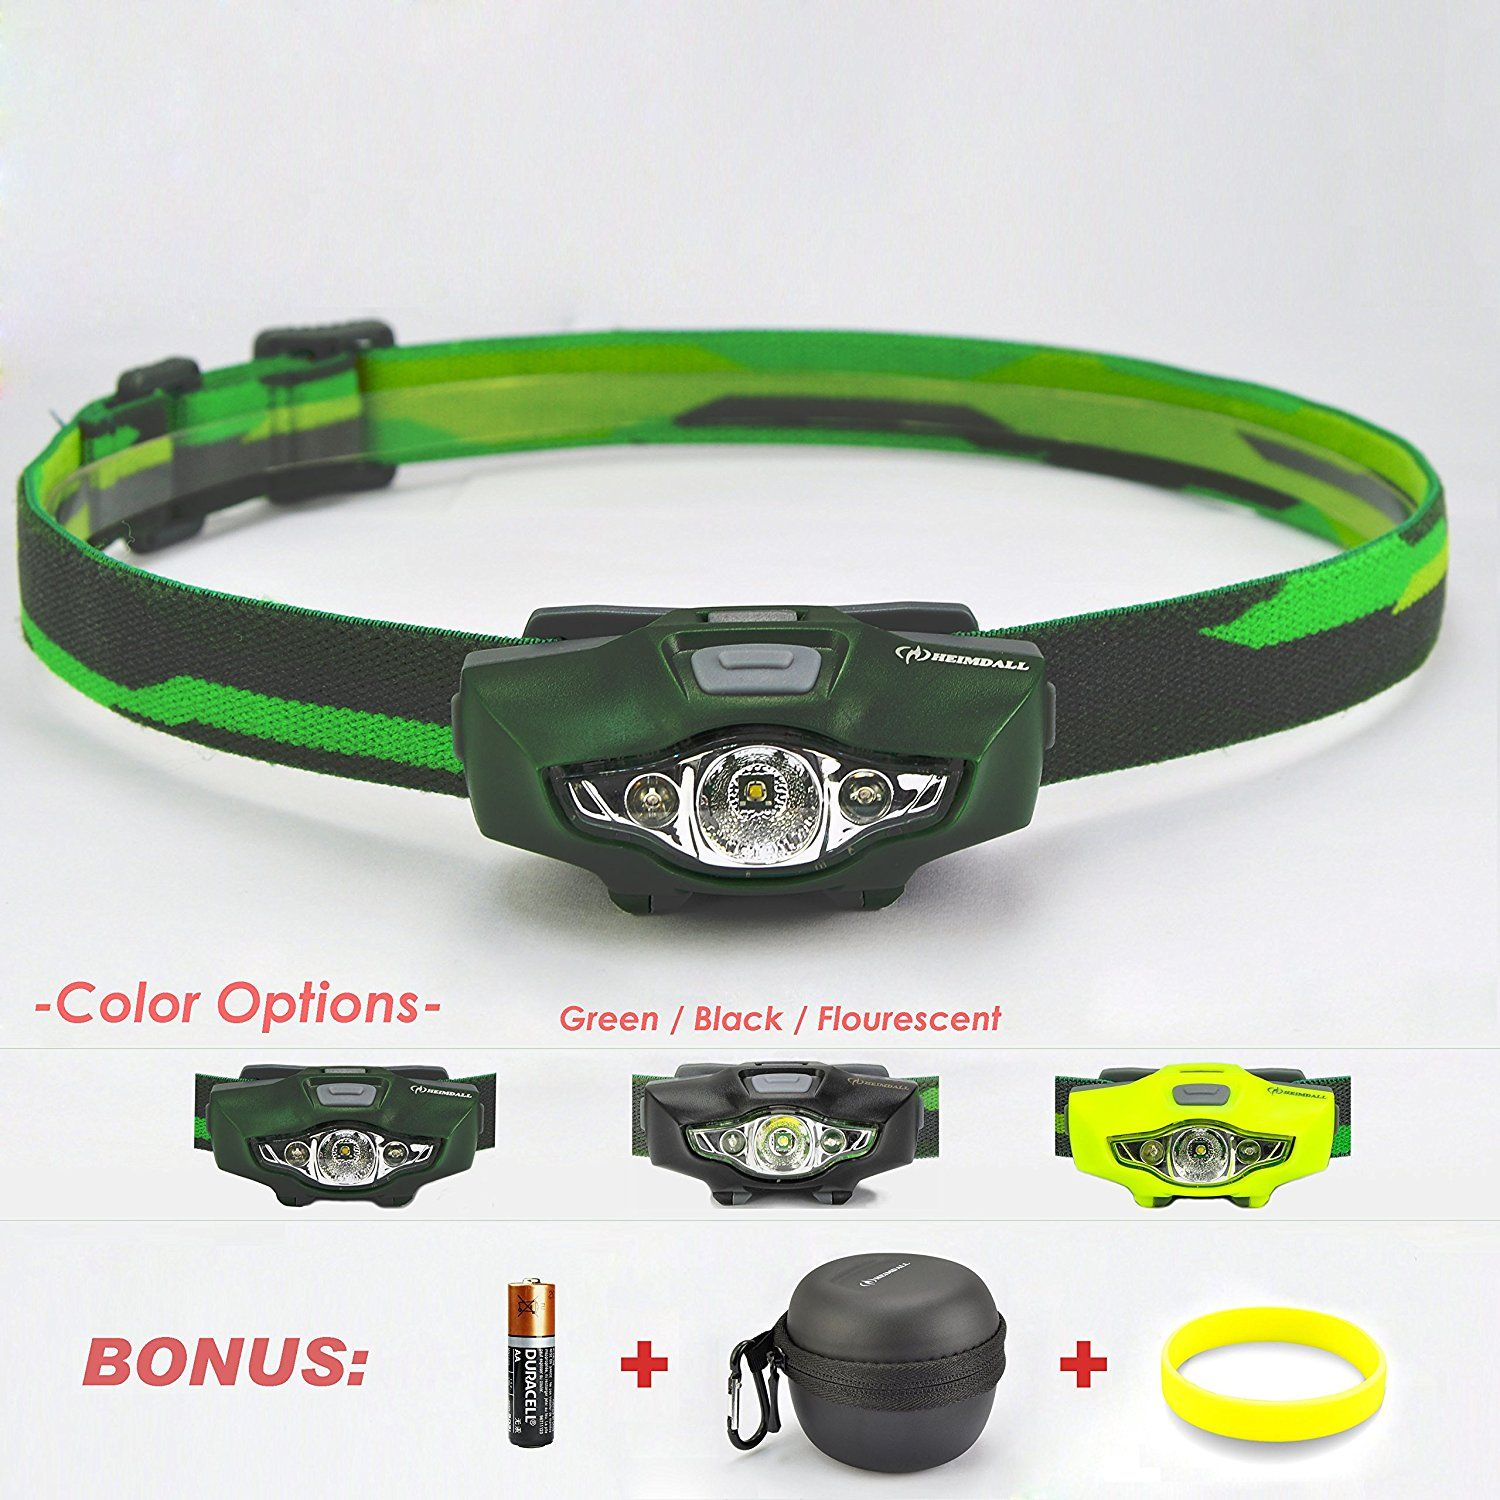 HEIMDALL Led Headlamp Flashlight with Red Light, Only 1.3 oz, 115 lumens, 1 AA Battery(included), 4 White